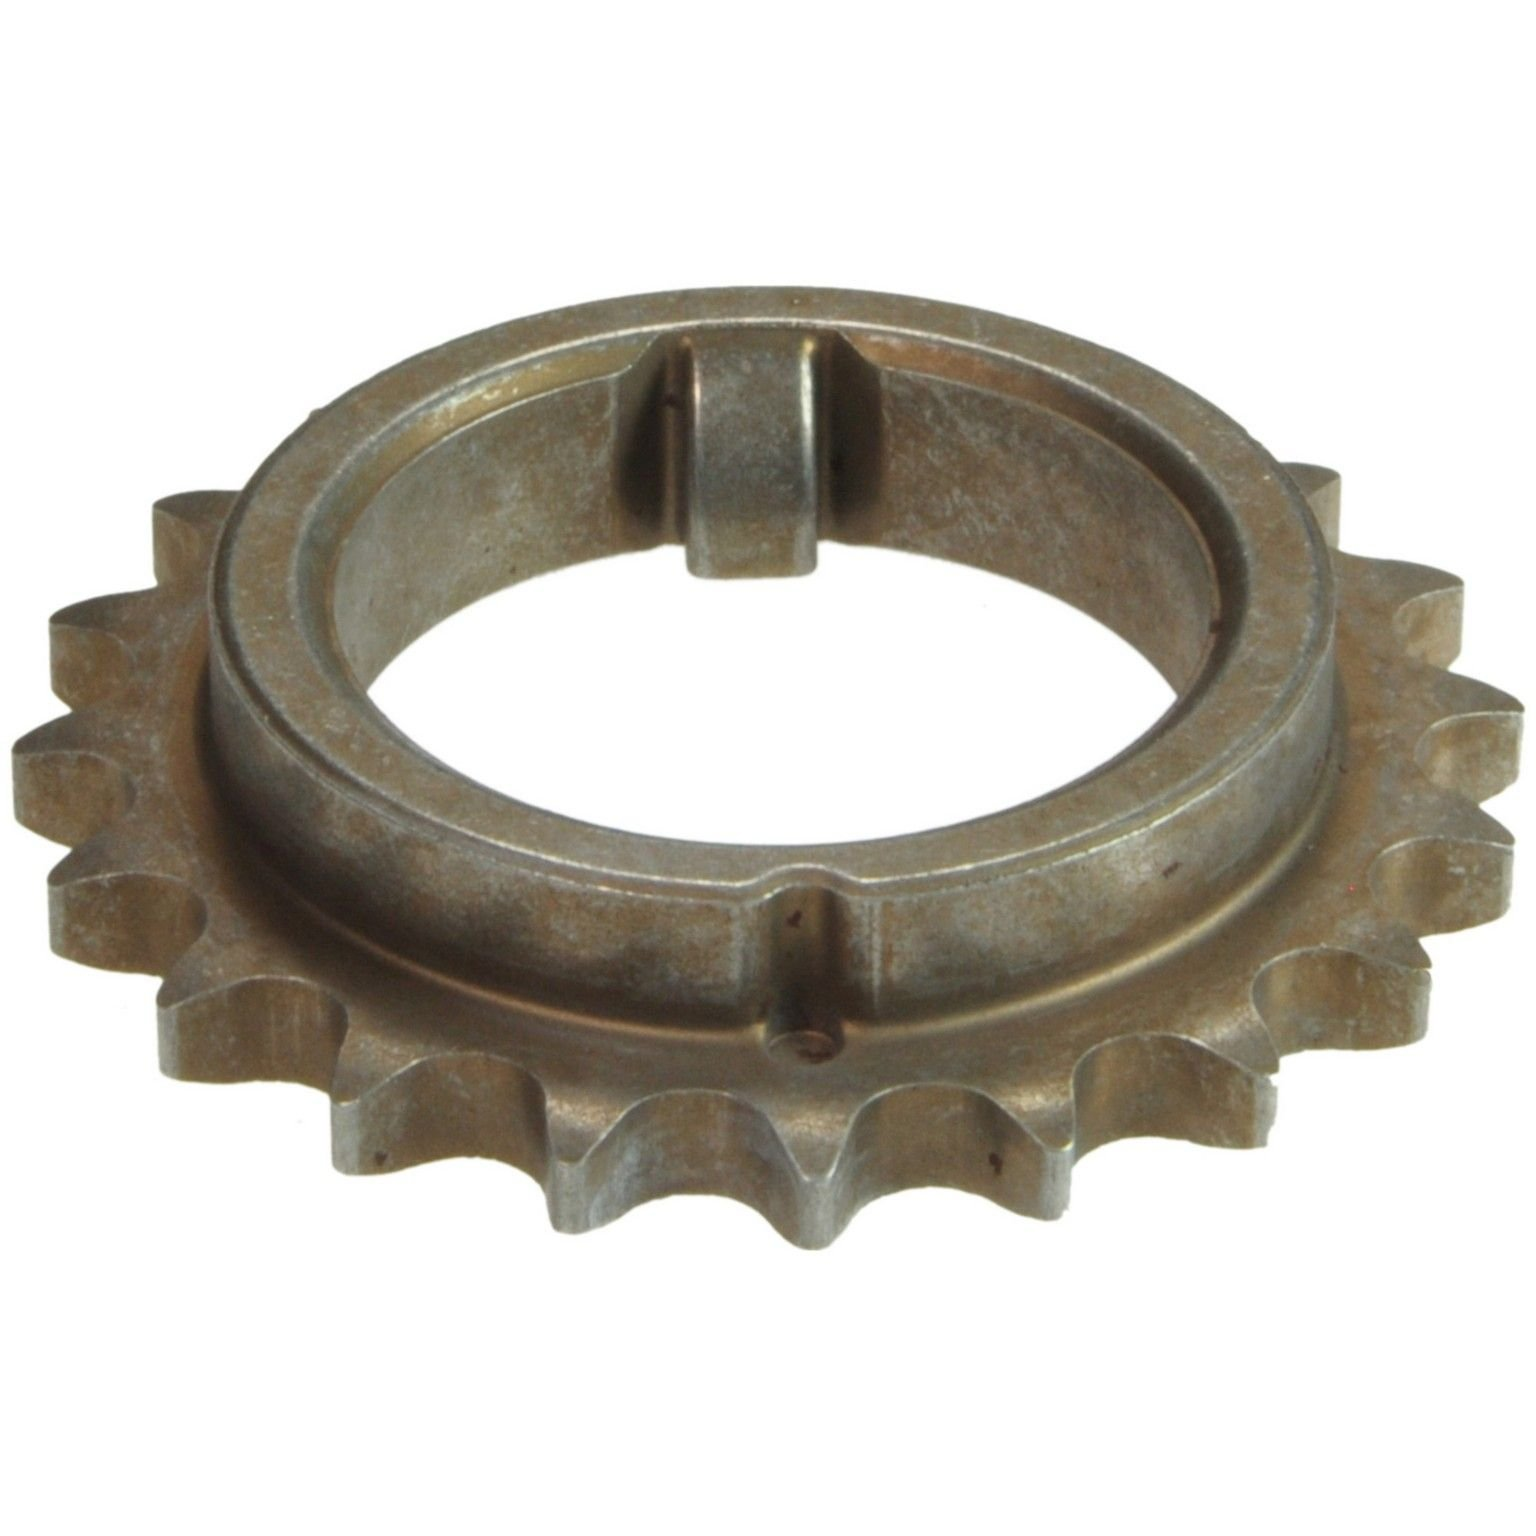 1999 Lincoln Navigator Engine Timing Camshaft Sprocket 8 Cyl 5.4L (Sealed  Power 223-790A) Secondary 20 Teeth .